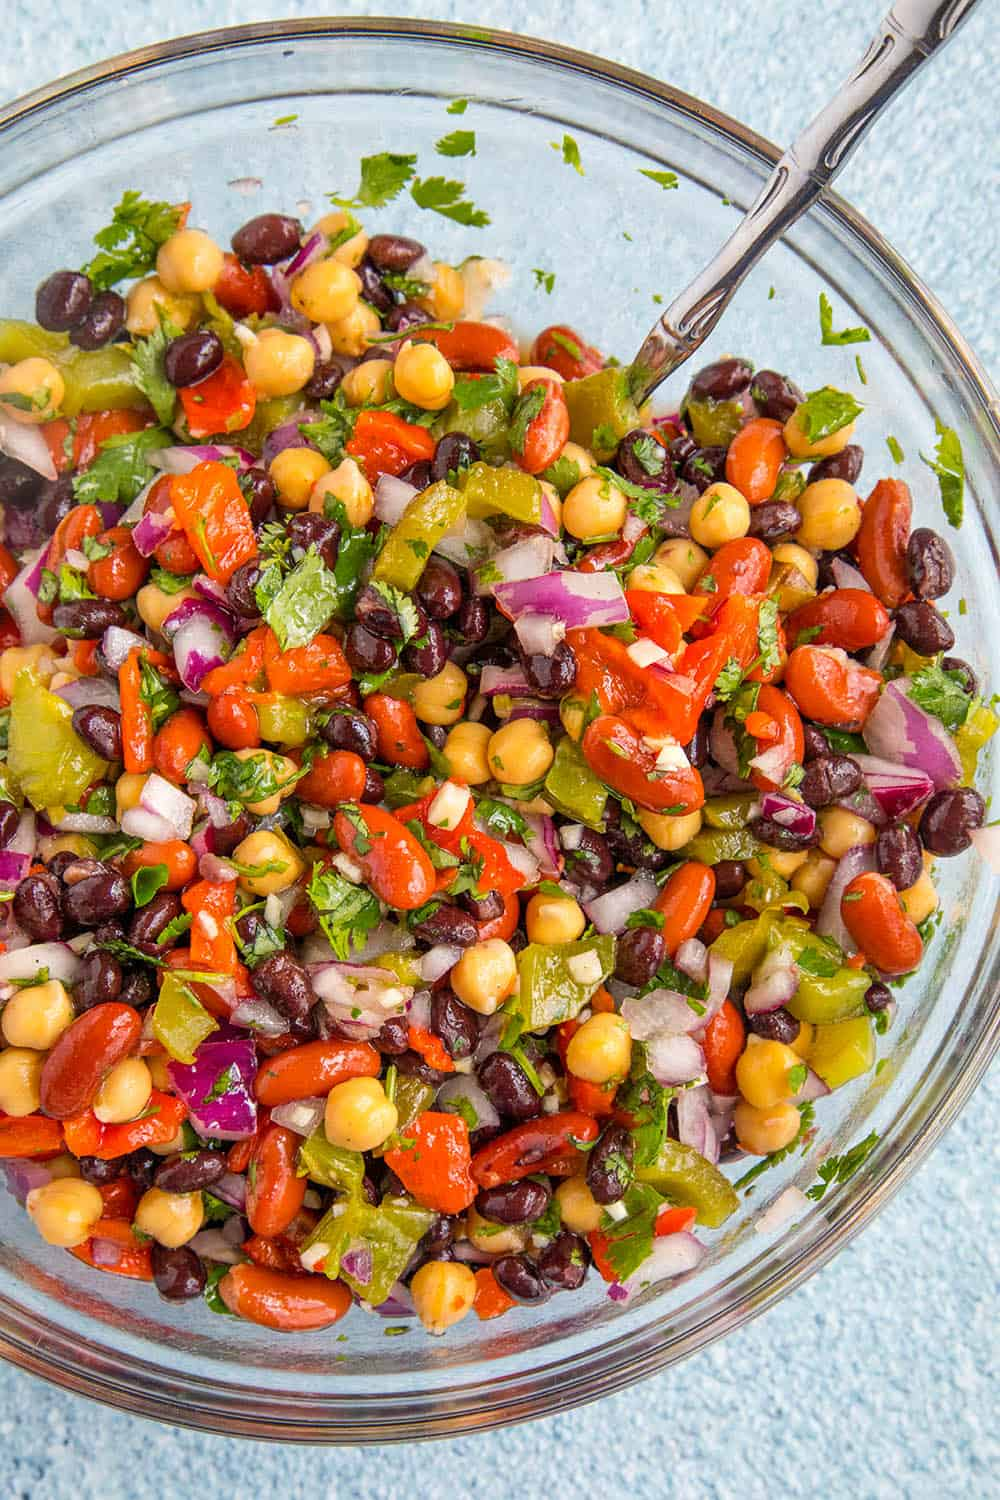 Mike's Zesty Three Bean Salad, freshly mixed in a mixing bowl